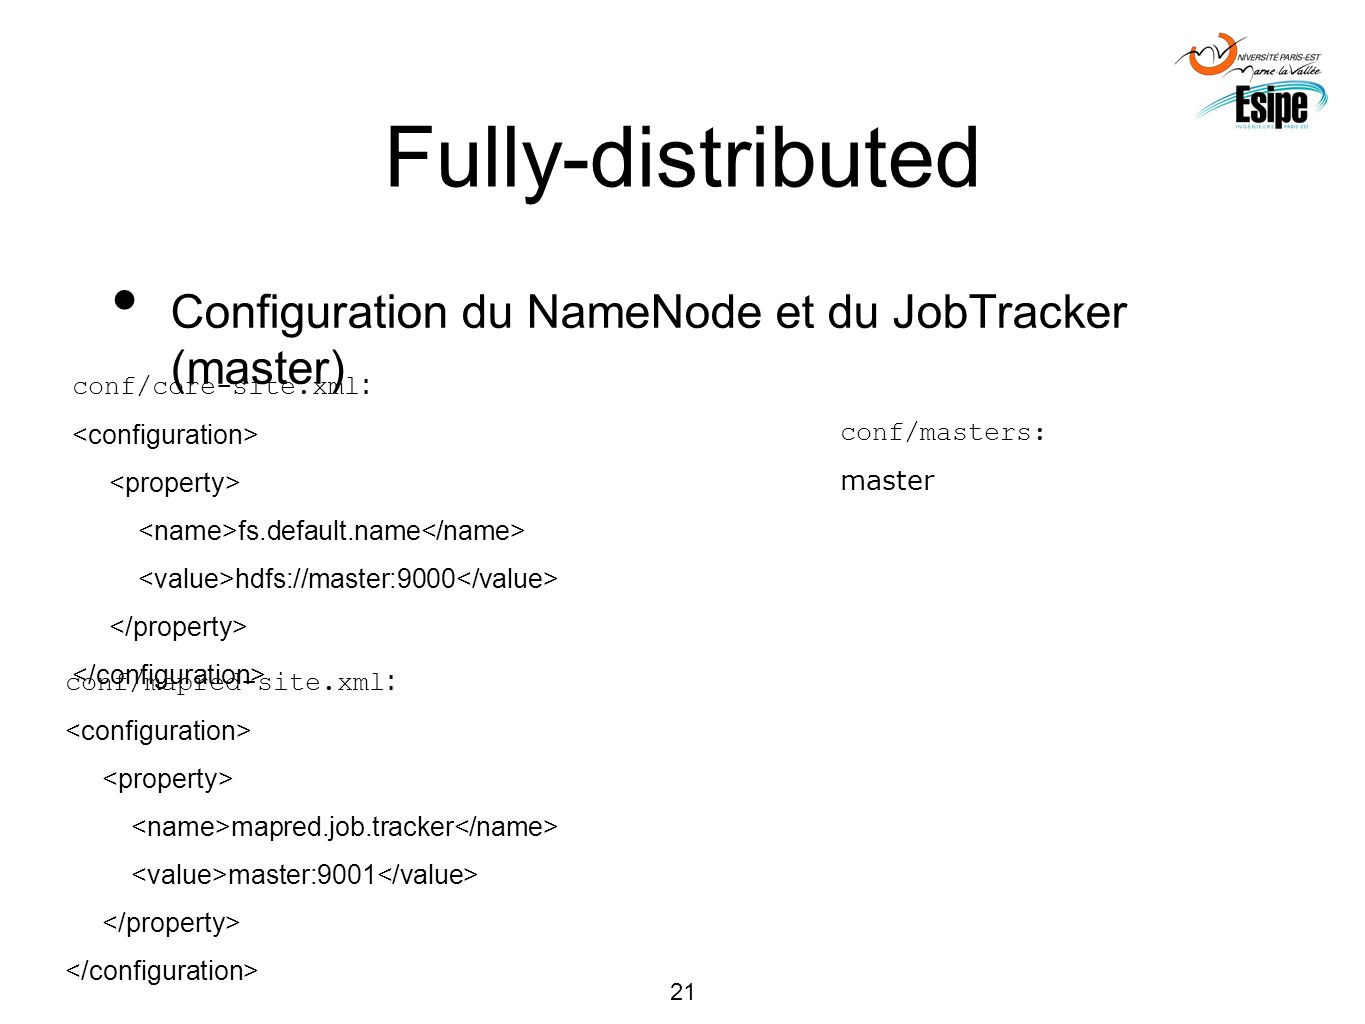 Fully-distributed Configuration du NameNode et du JobTracker (master)